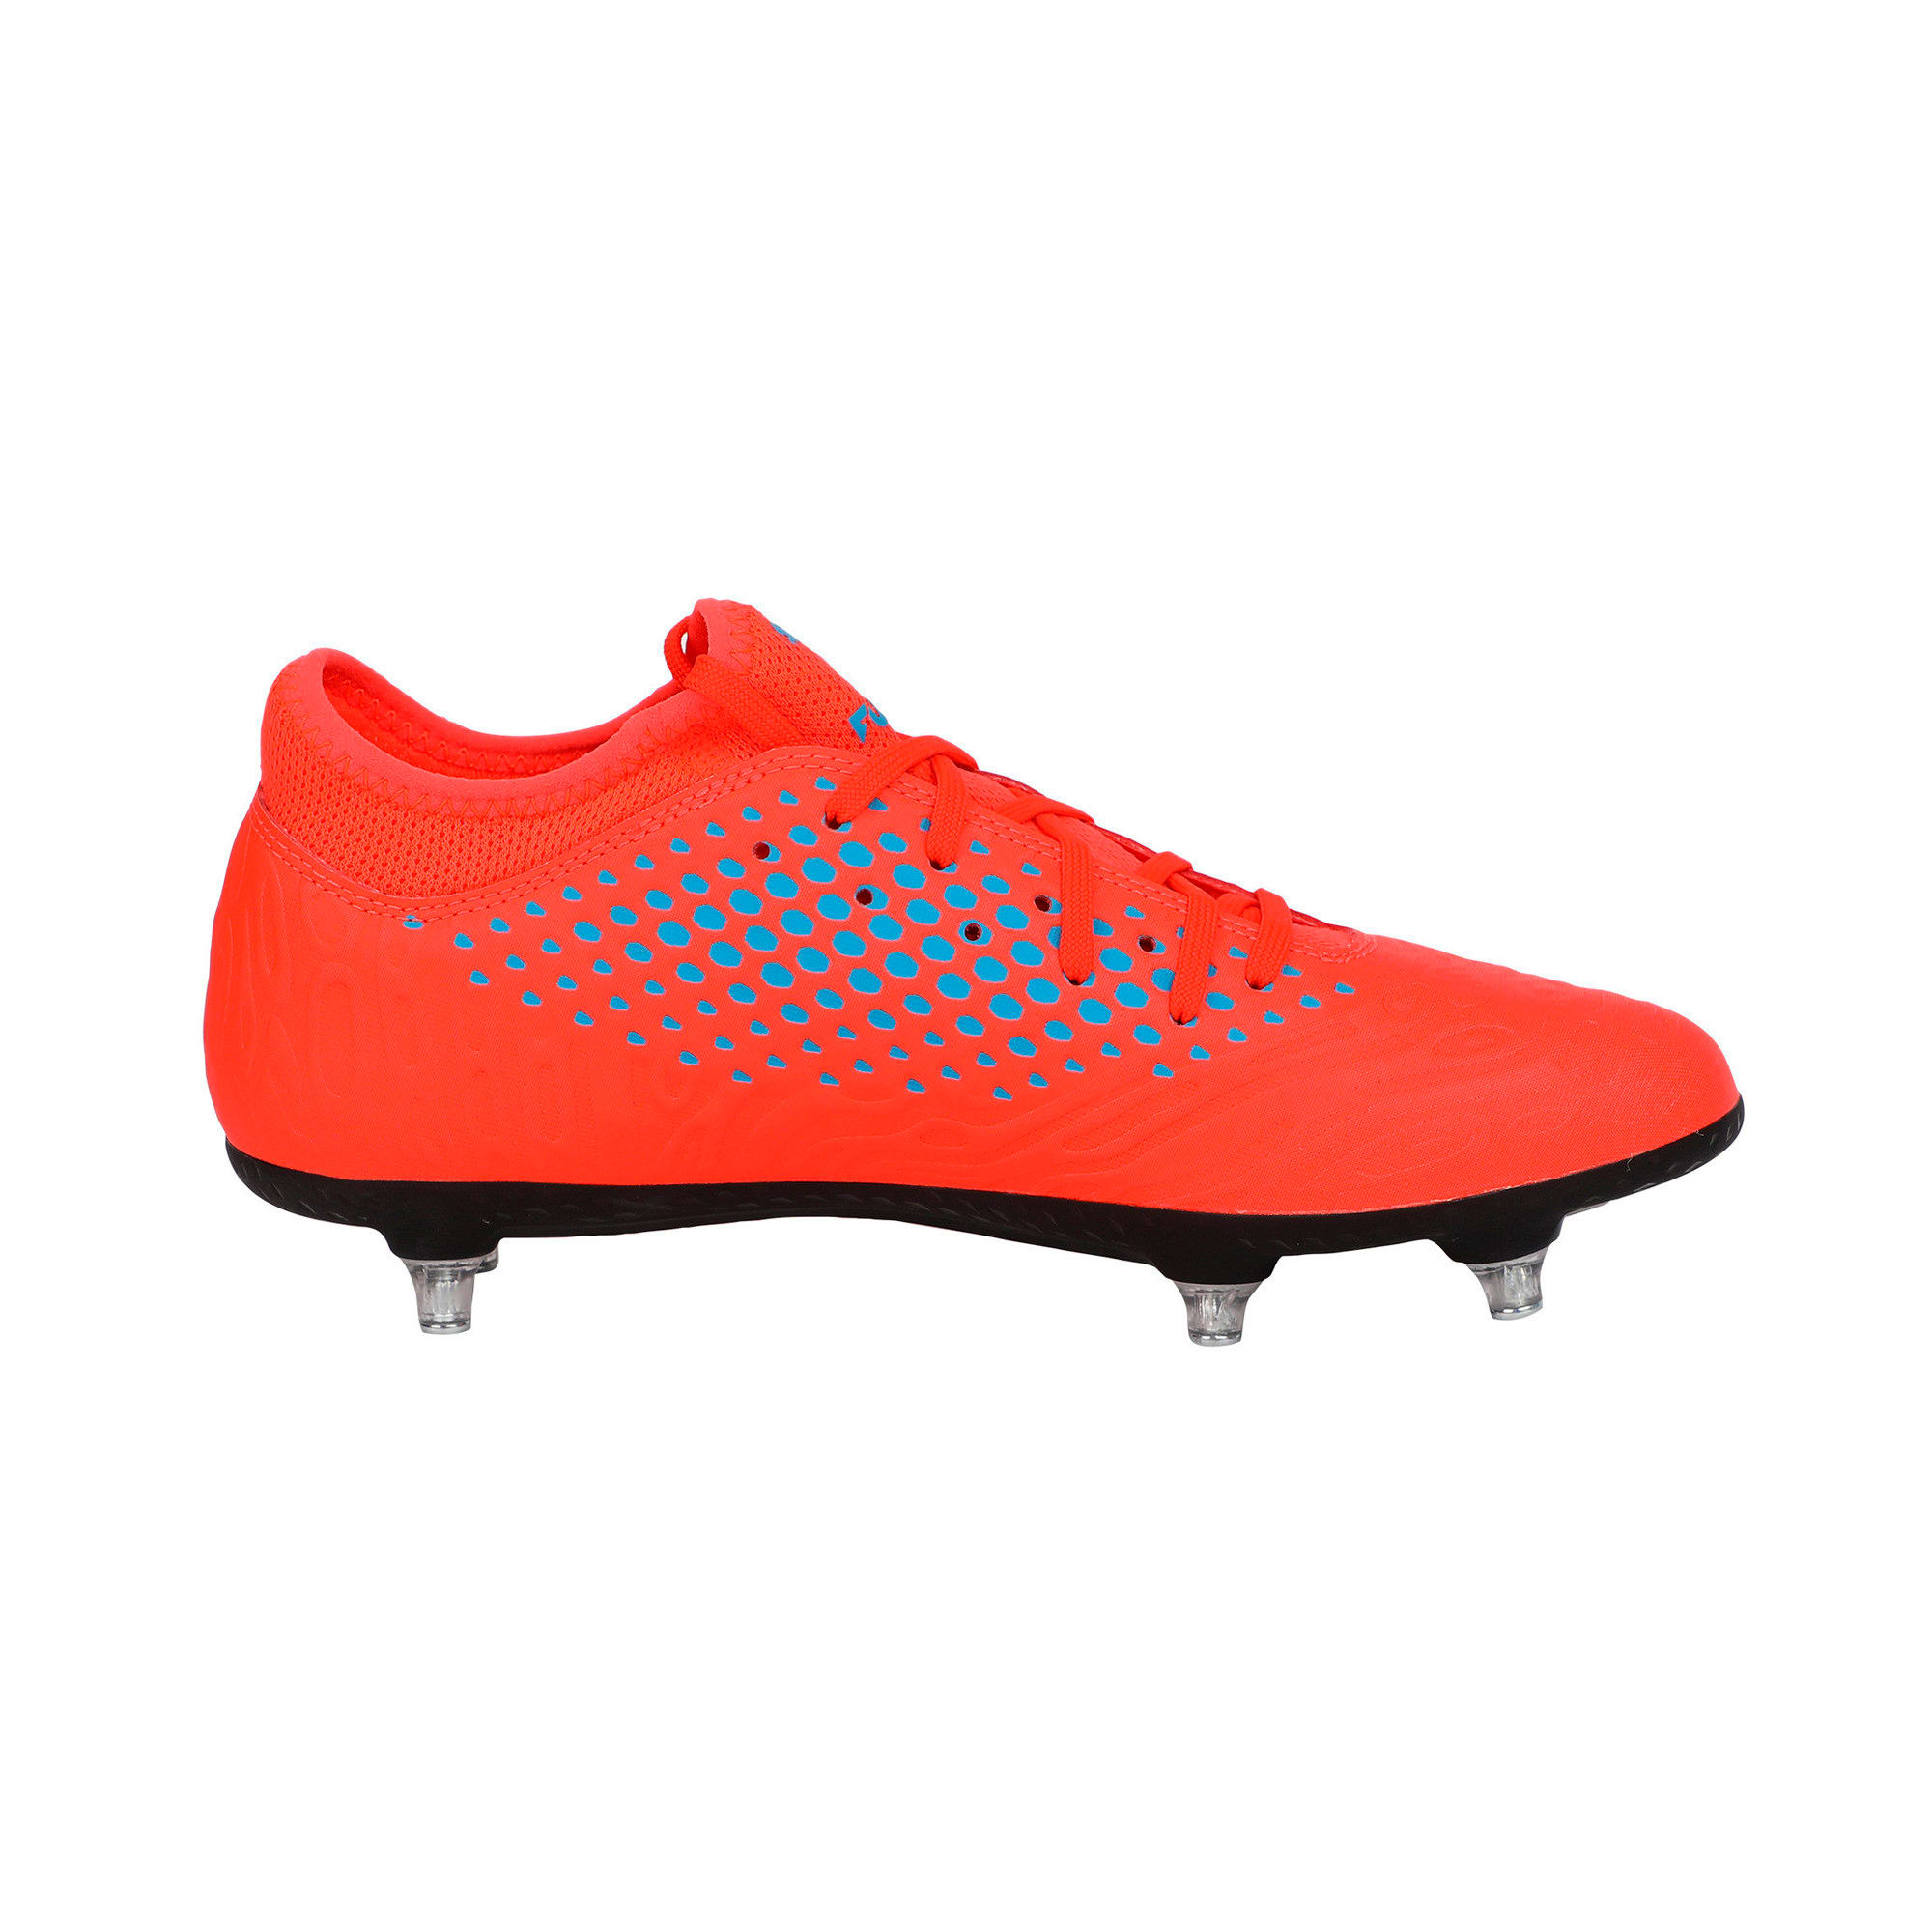 Thumbnail 5 of FUTURE 19.4 SG Men's Football Boots, Red Blast-Bleu Azur, medium-IND